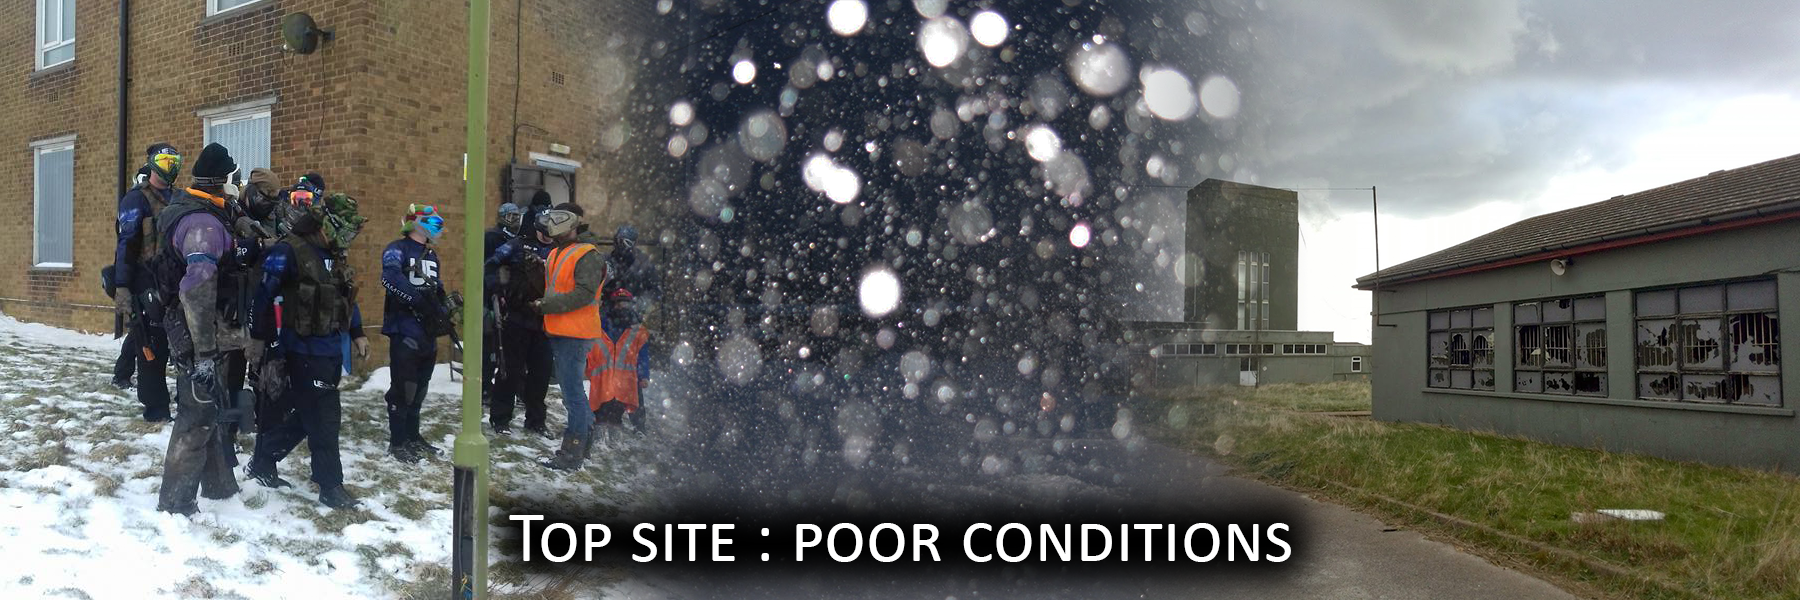 Top site : poor conditions